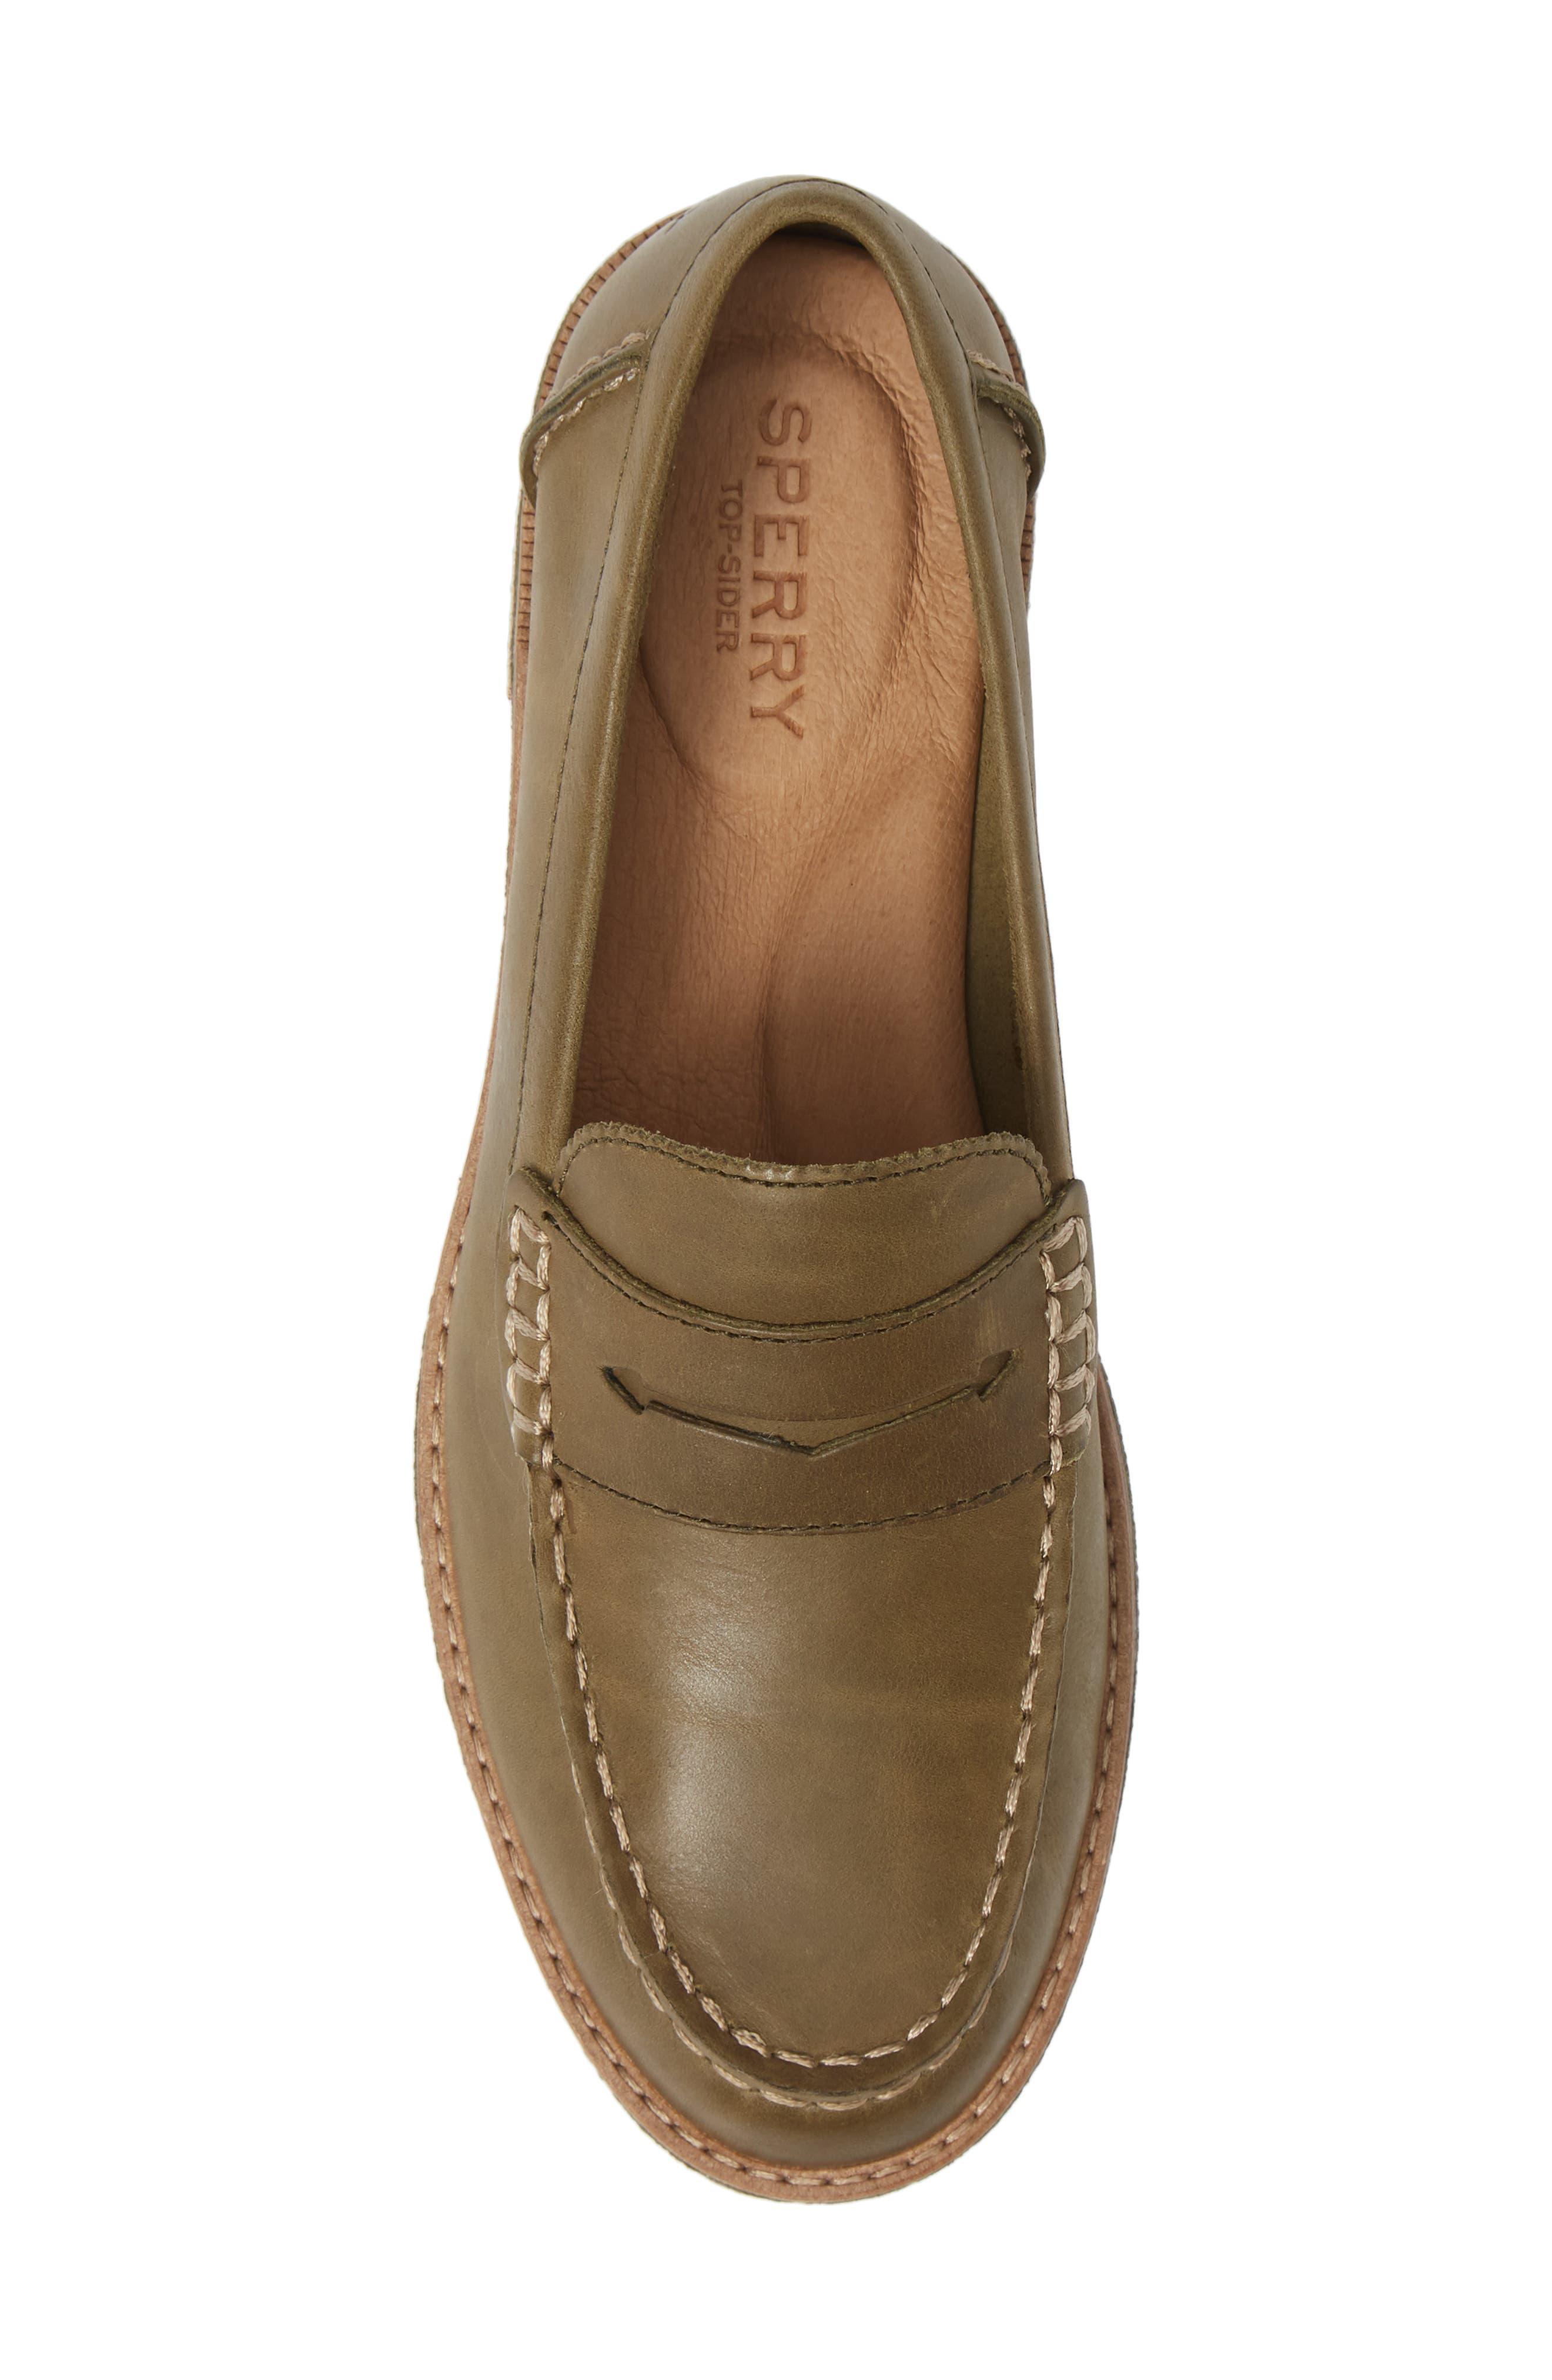 Seaport Penny Loafer,                             Alternate thumbnail 5, color,                             OLIVE LEATHER